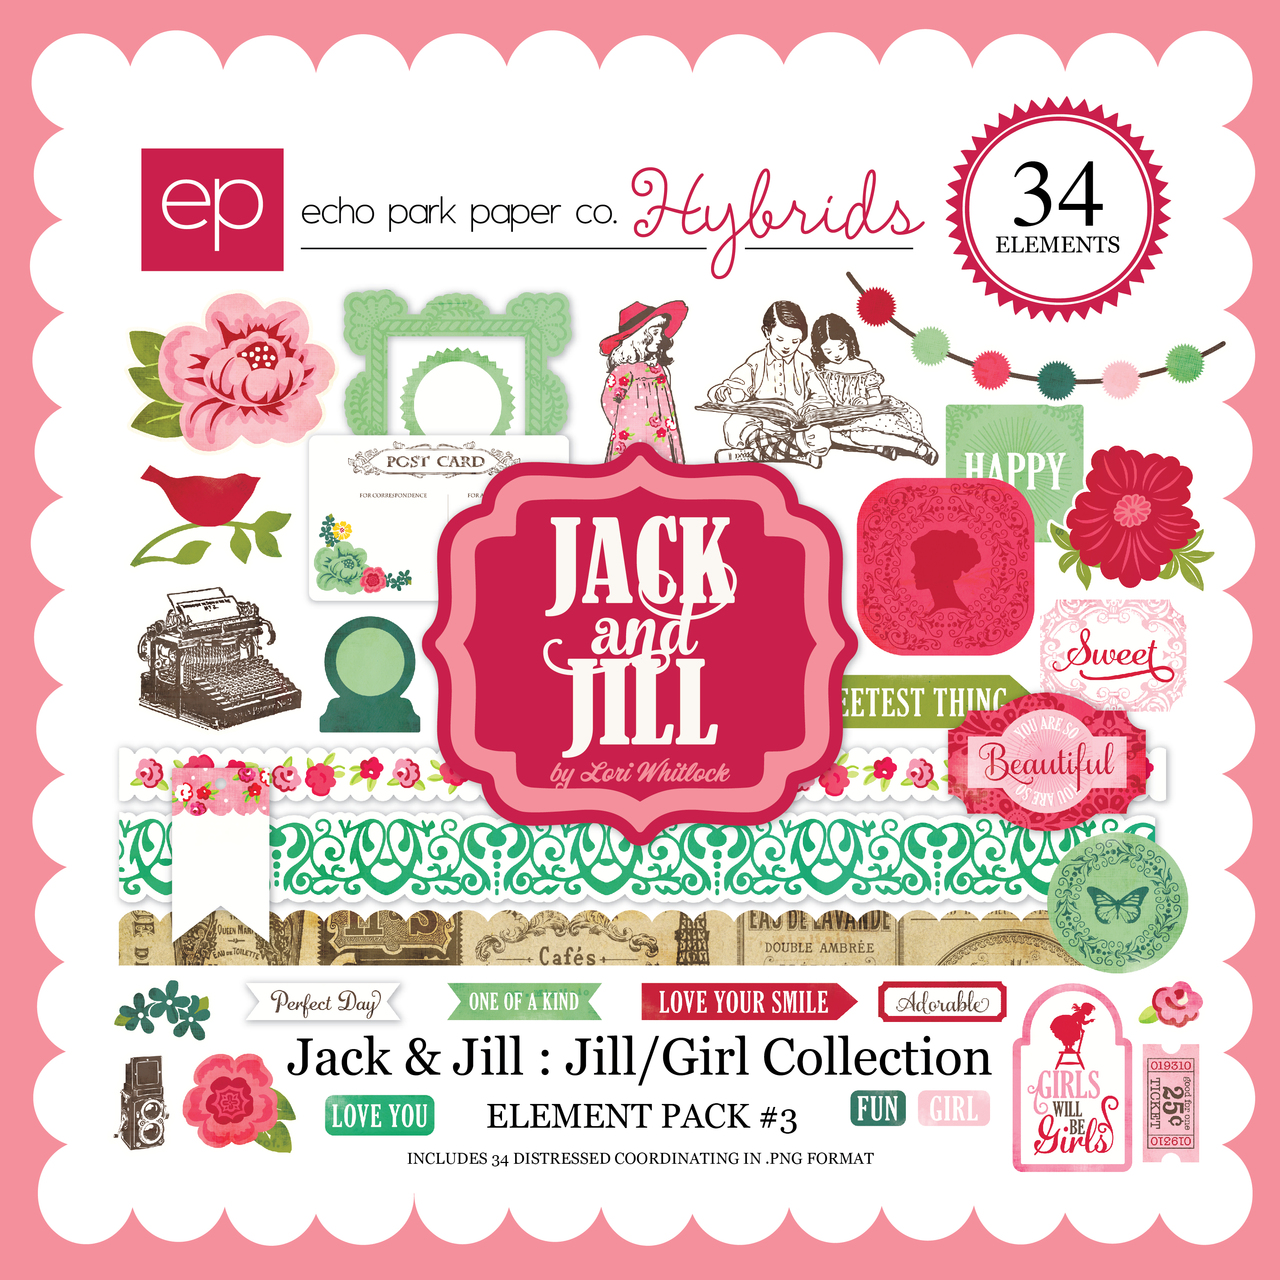 Jack & Jill: Jill/Girl Element Pack #3